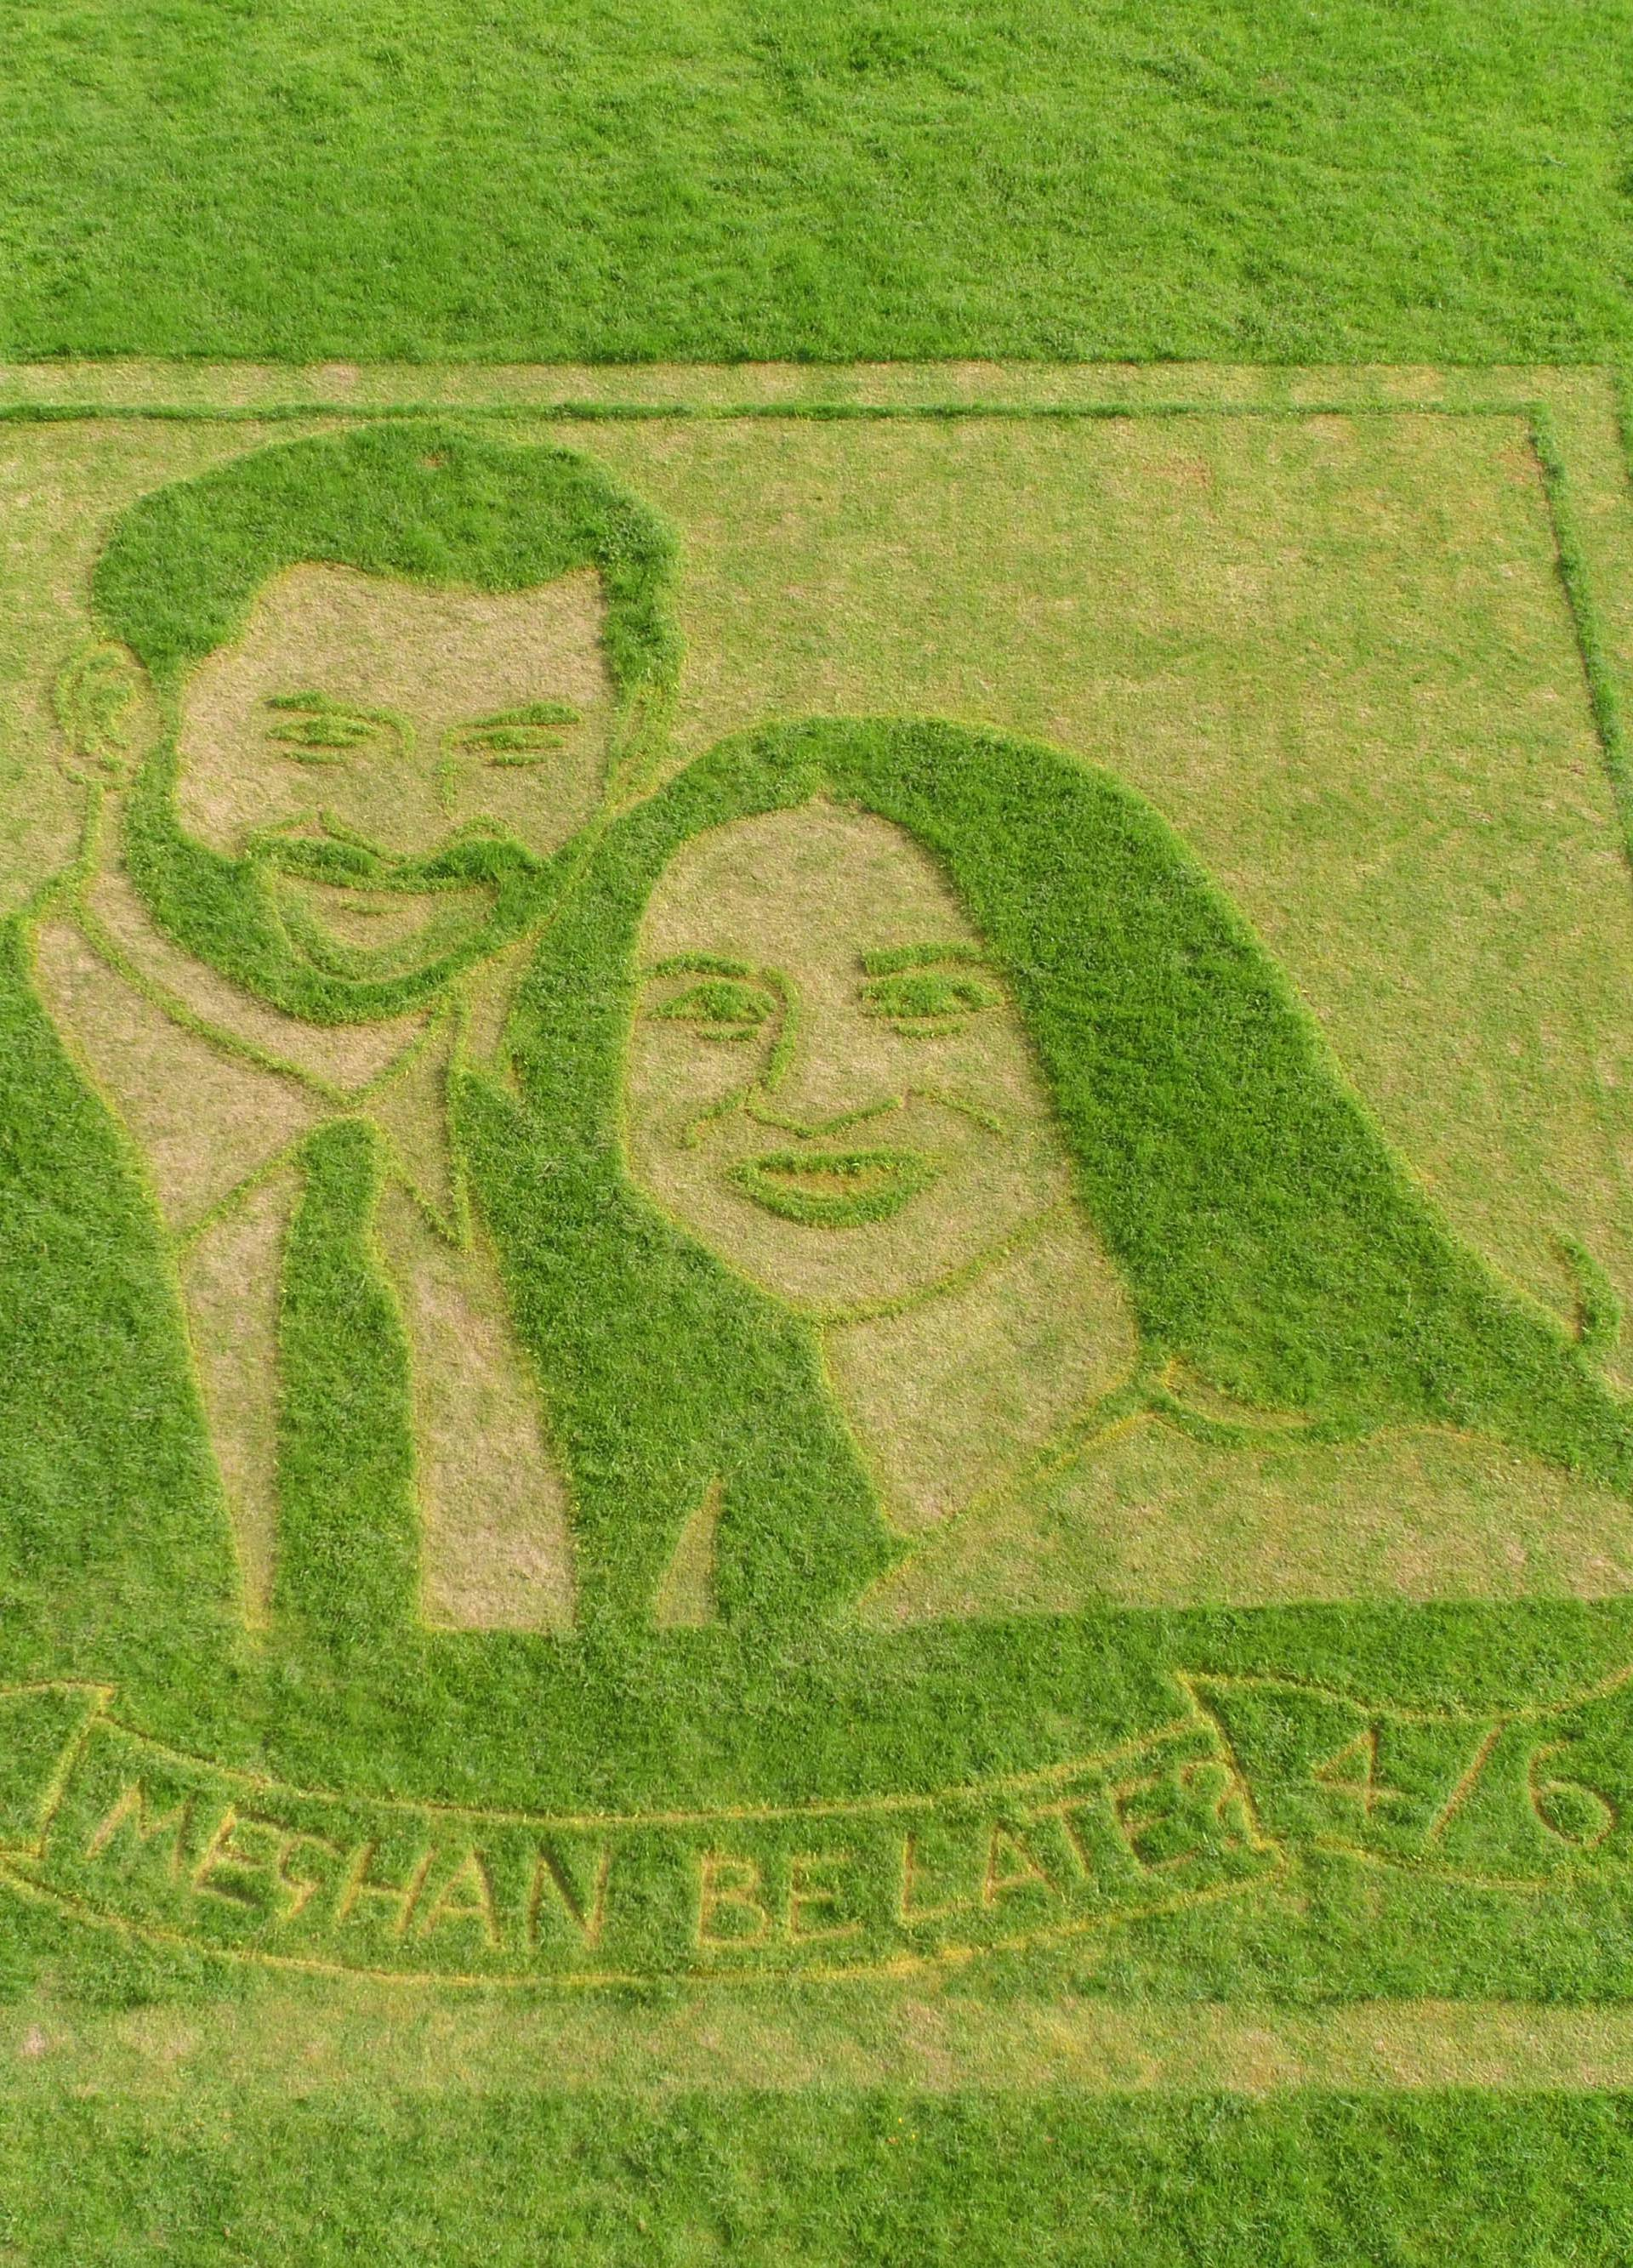 Royal wedding lawn art